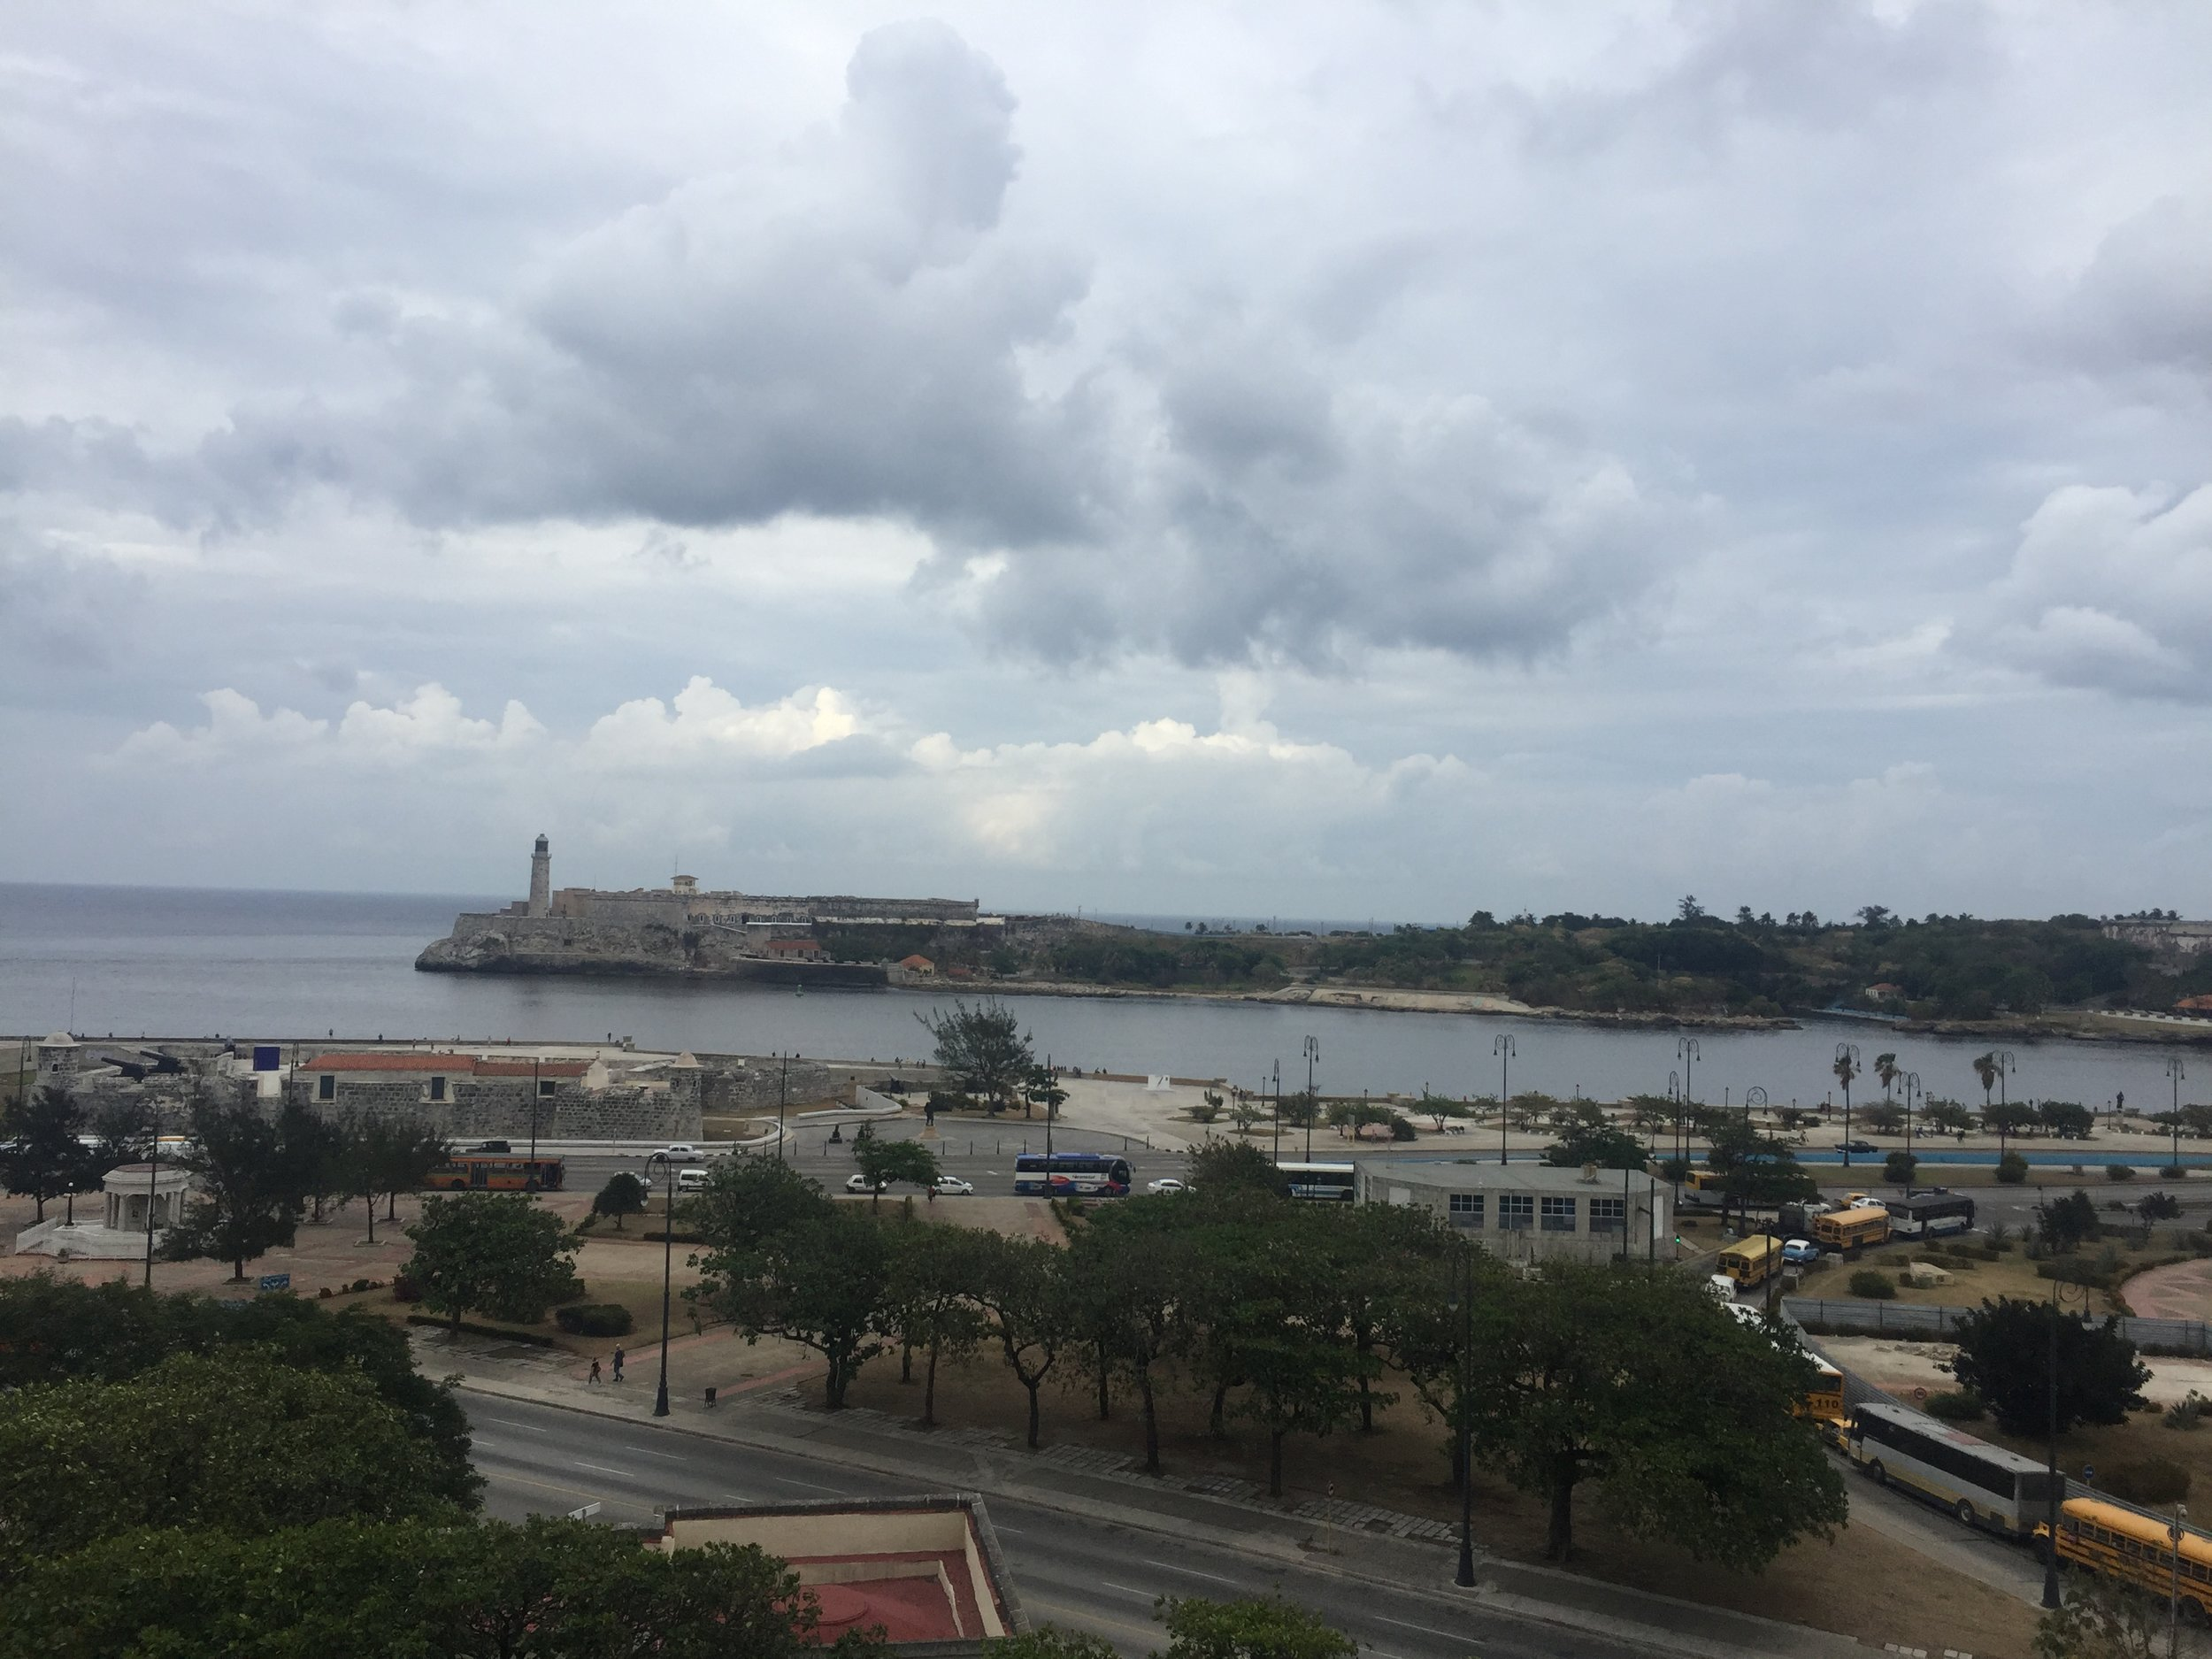 View from the balcony of my airbnb in Old Havana